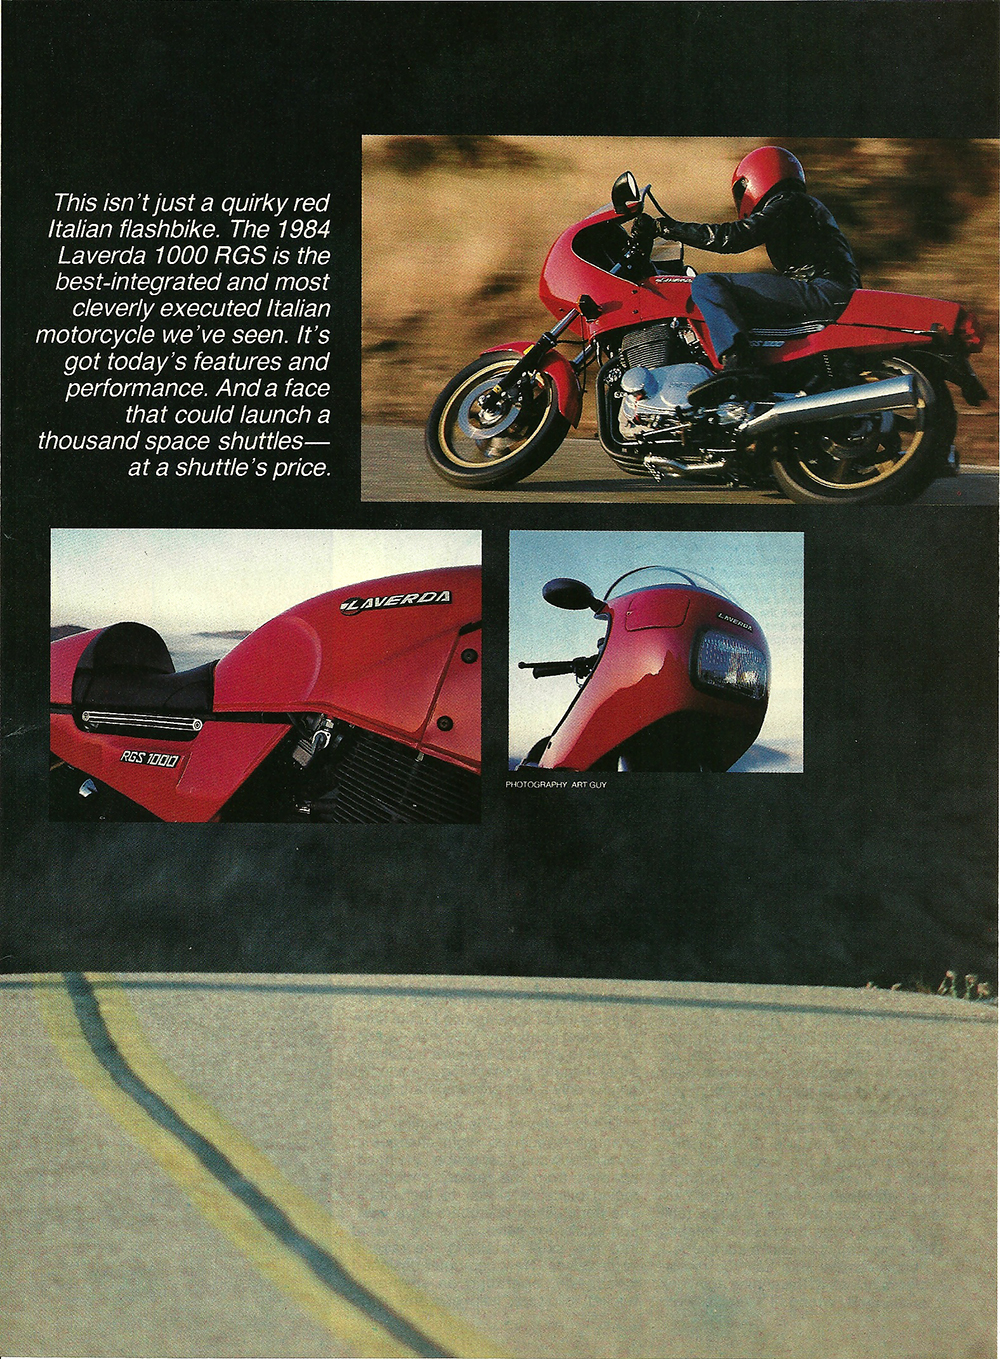 1984 Laverda RGS 1000 road test 2.jpg